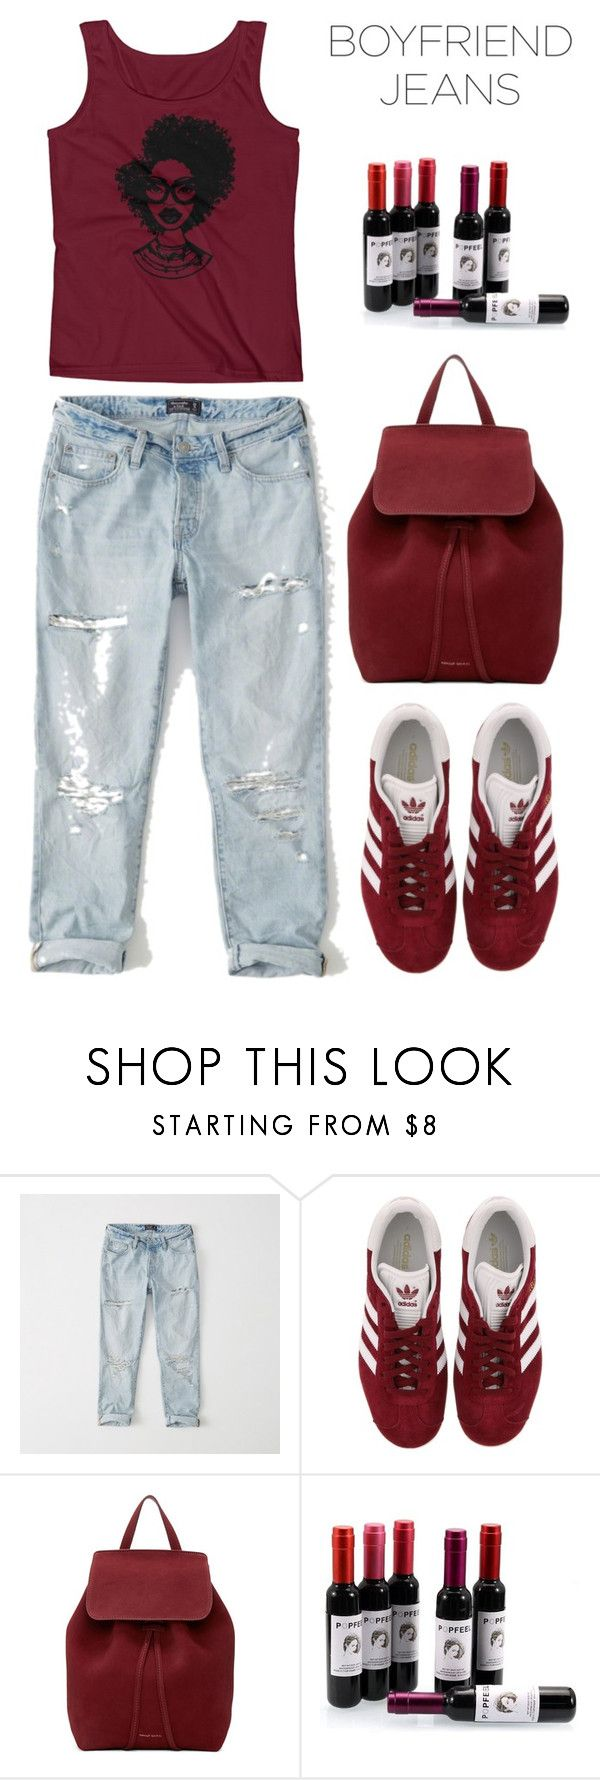 """Boyfriend Jeans"" by sukia ❤ liked on Polyvore featuring Abercrombie & Fitch, adidas and Mansur Gavriel"